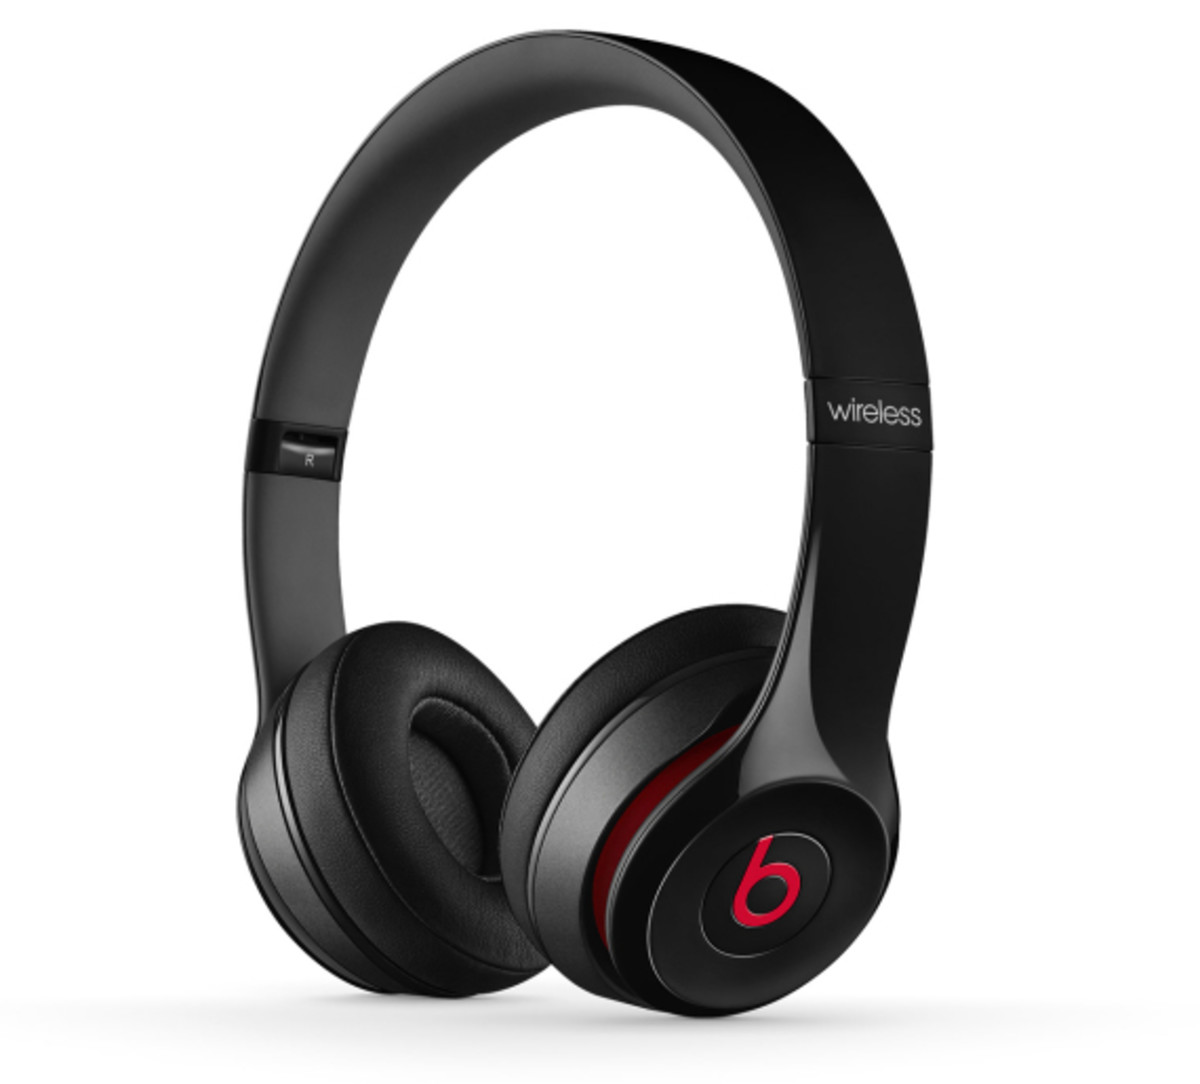 beats-by-dre-solo2-wireless-headphones-02